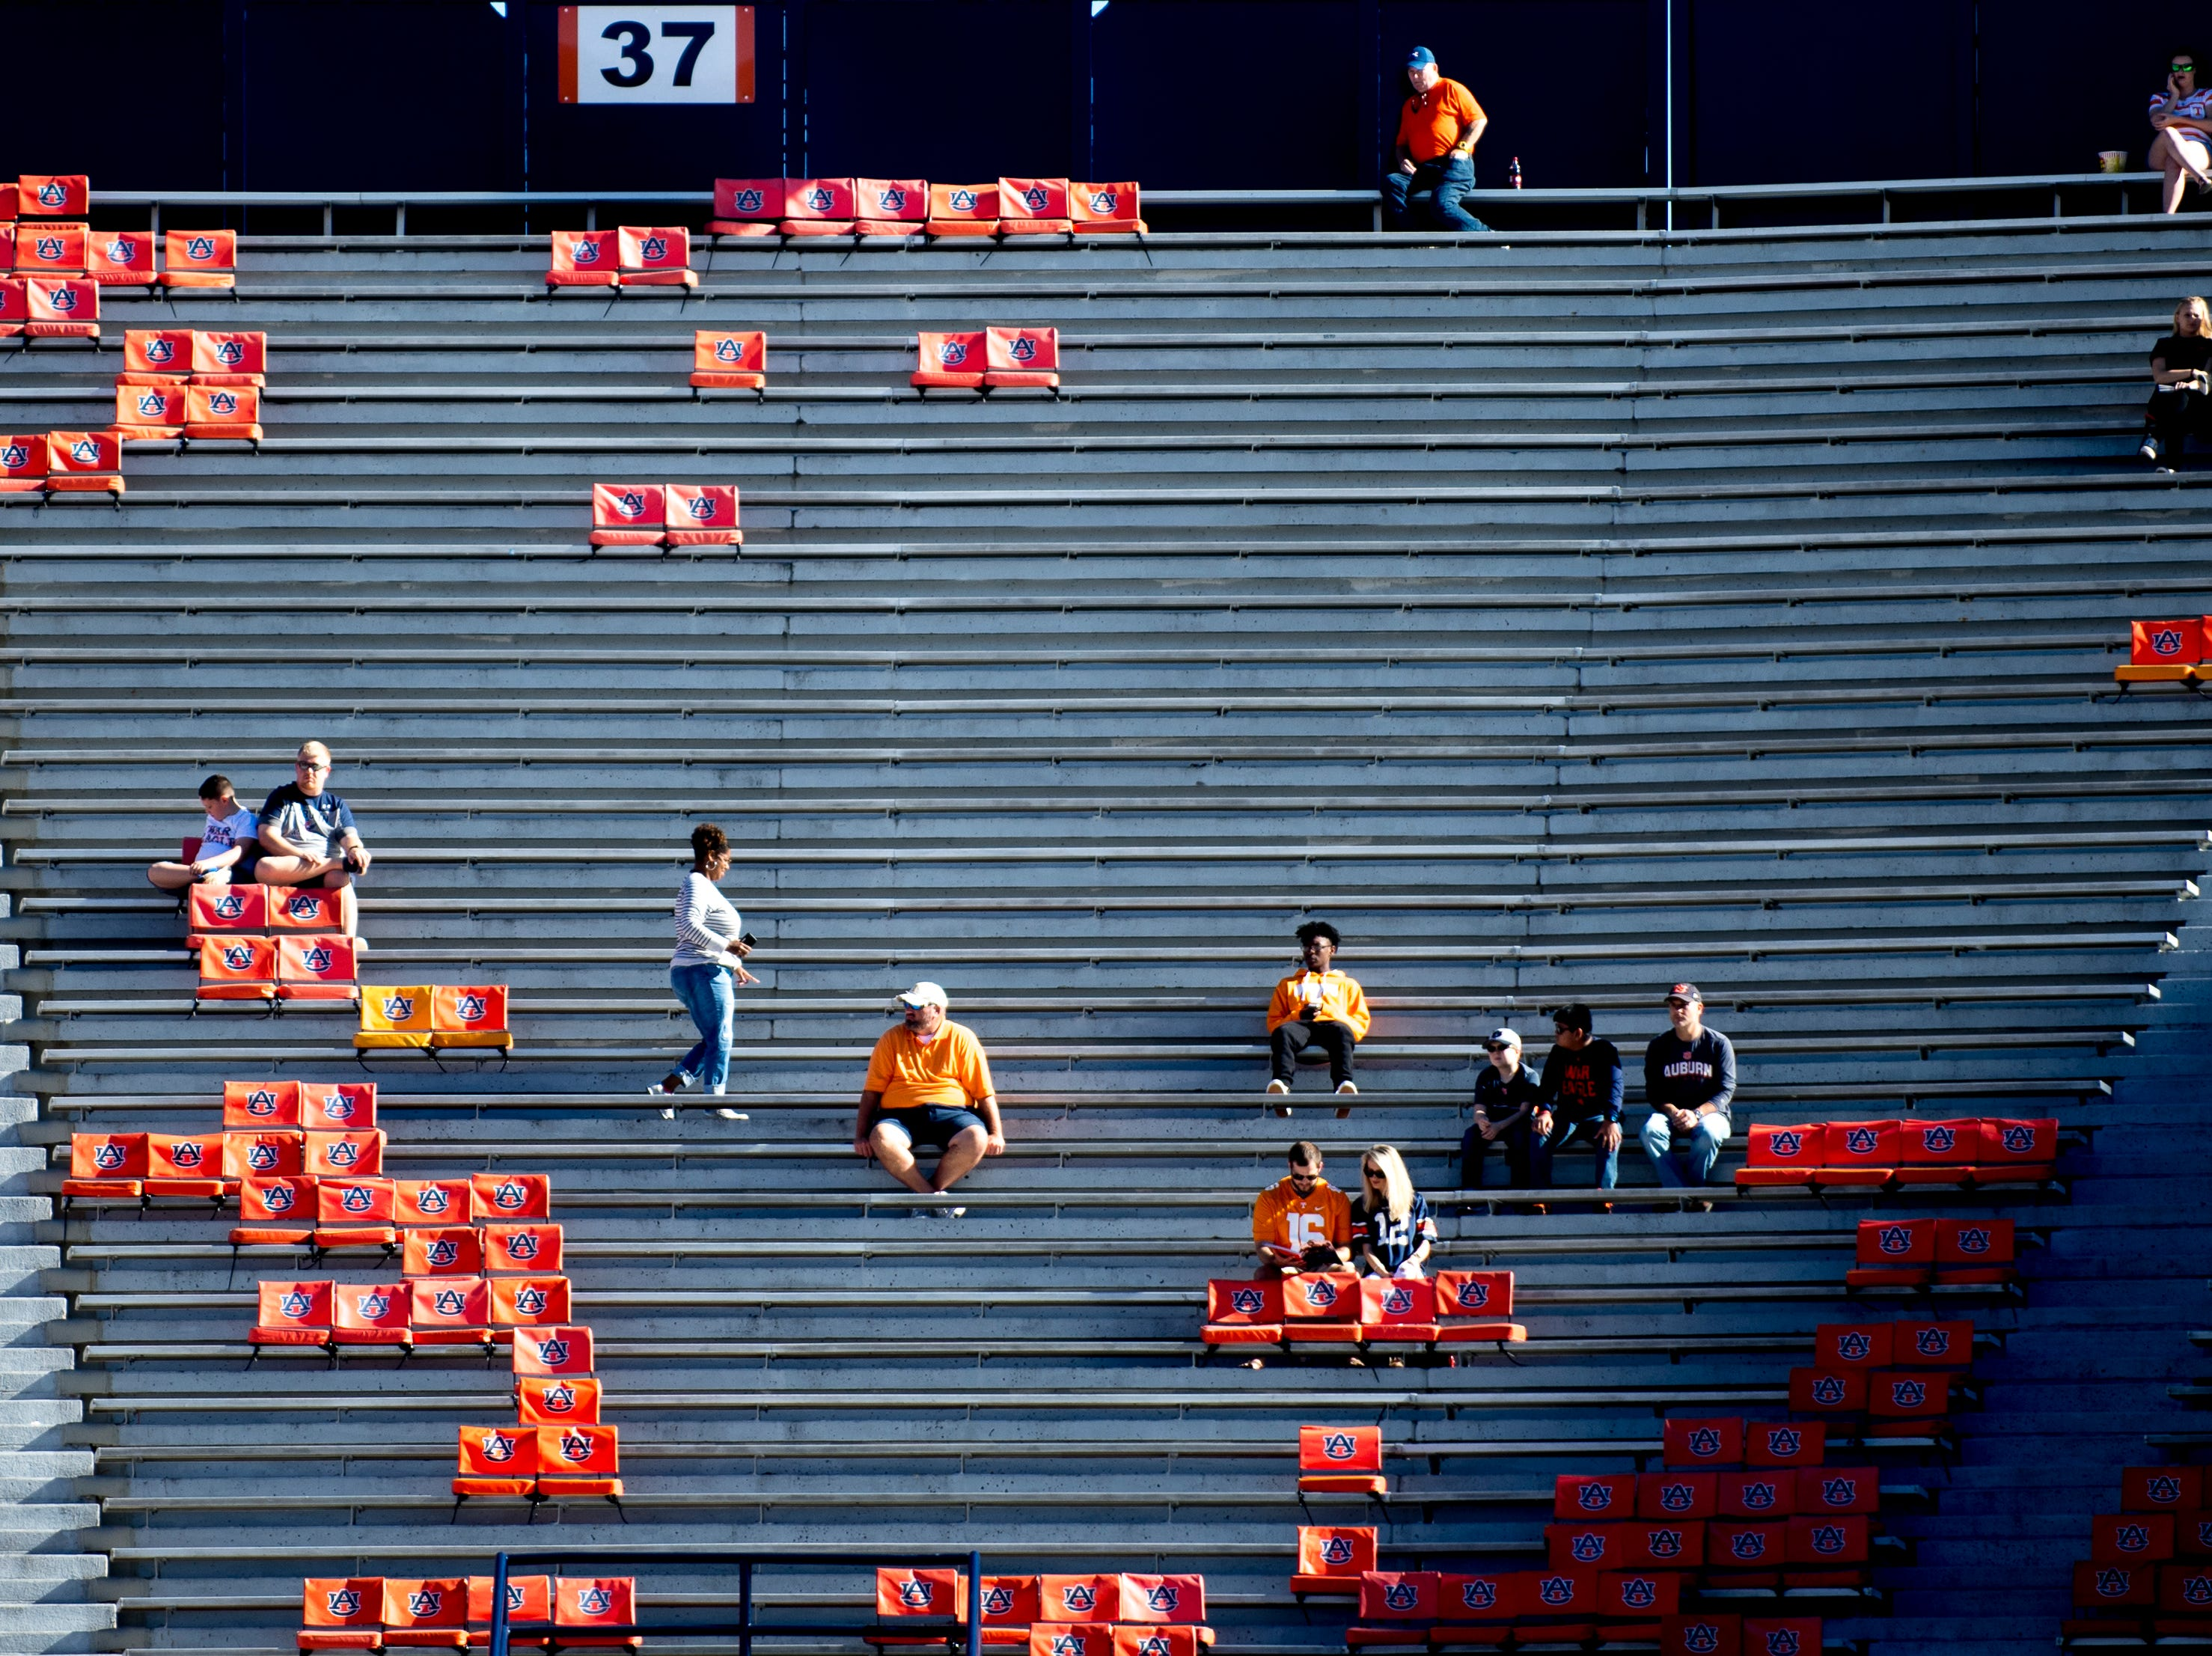 Fans find their seats in the stands during a game between Tennessee and Auburn at Jordan-Hare Stadium in Auburn, Alabama on Saturday, October 13, 2018.